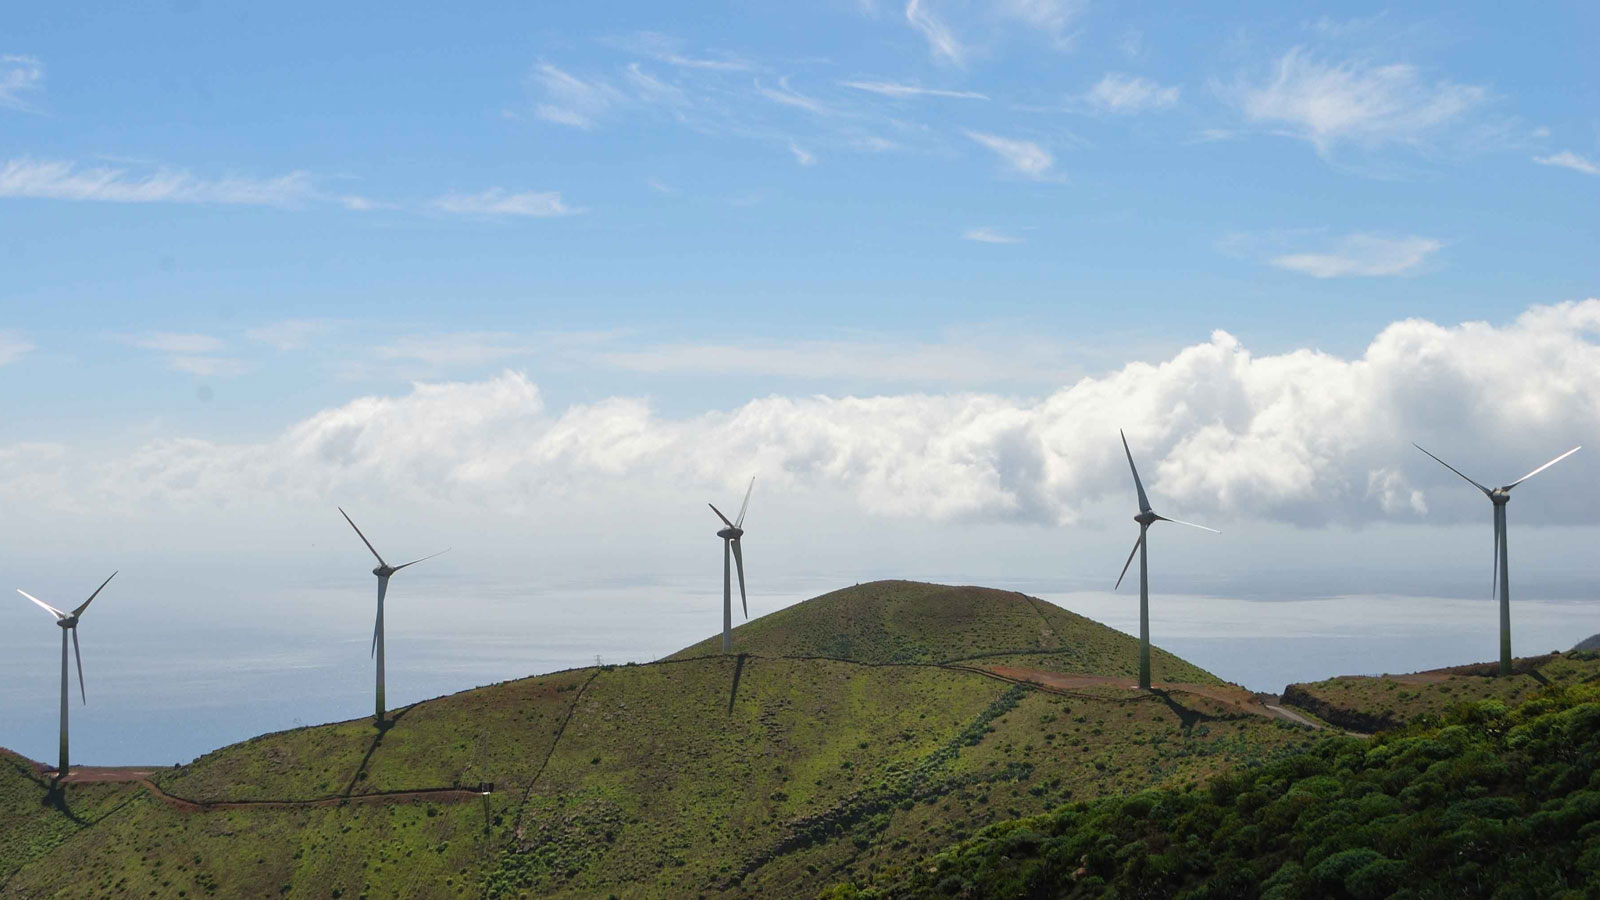 El Hierro achieves 24 consecutive days of supplying its electricity from 100% renewable energy